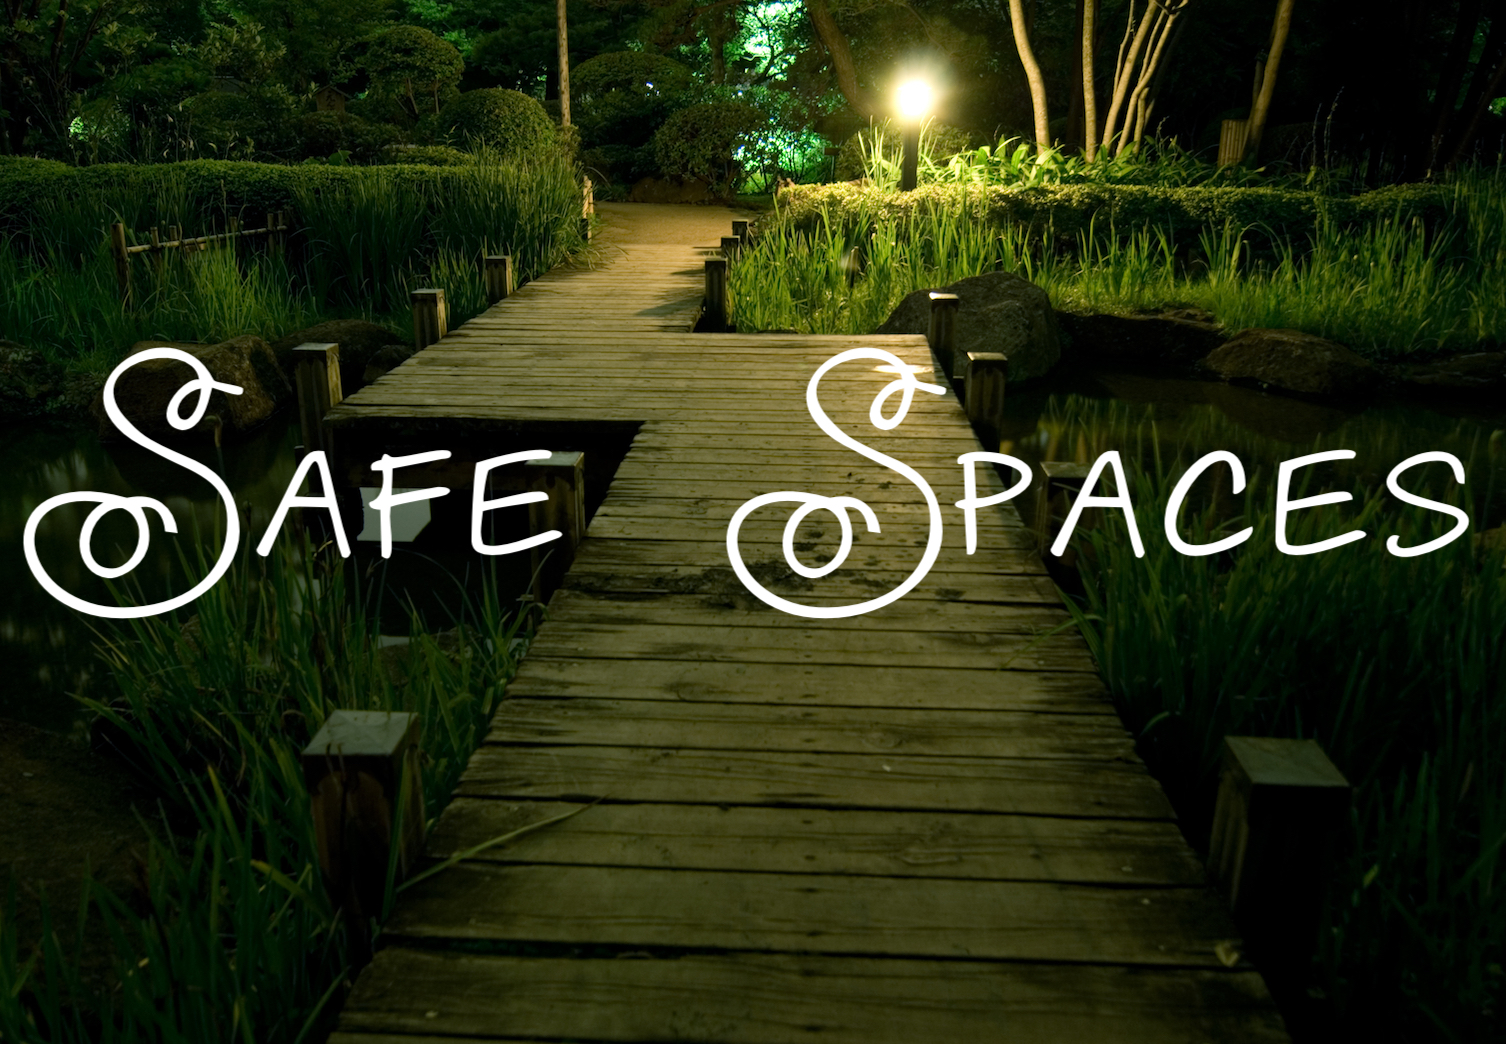 Safe Spaces (What Is a Safe Space and How Do We Consciously Create One?)